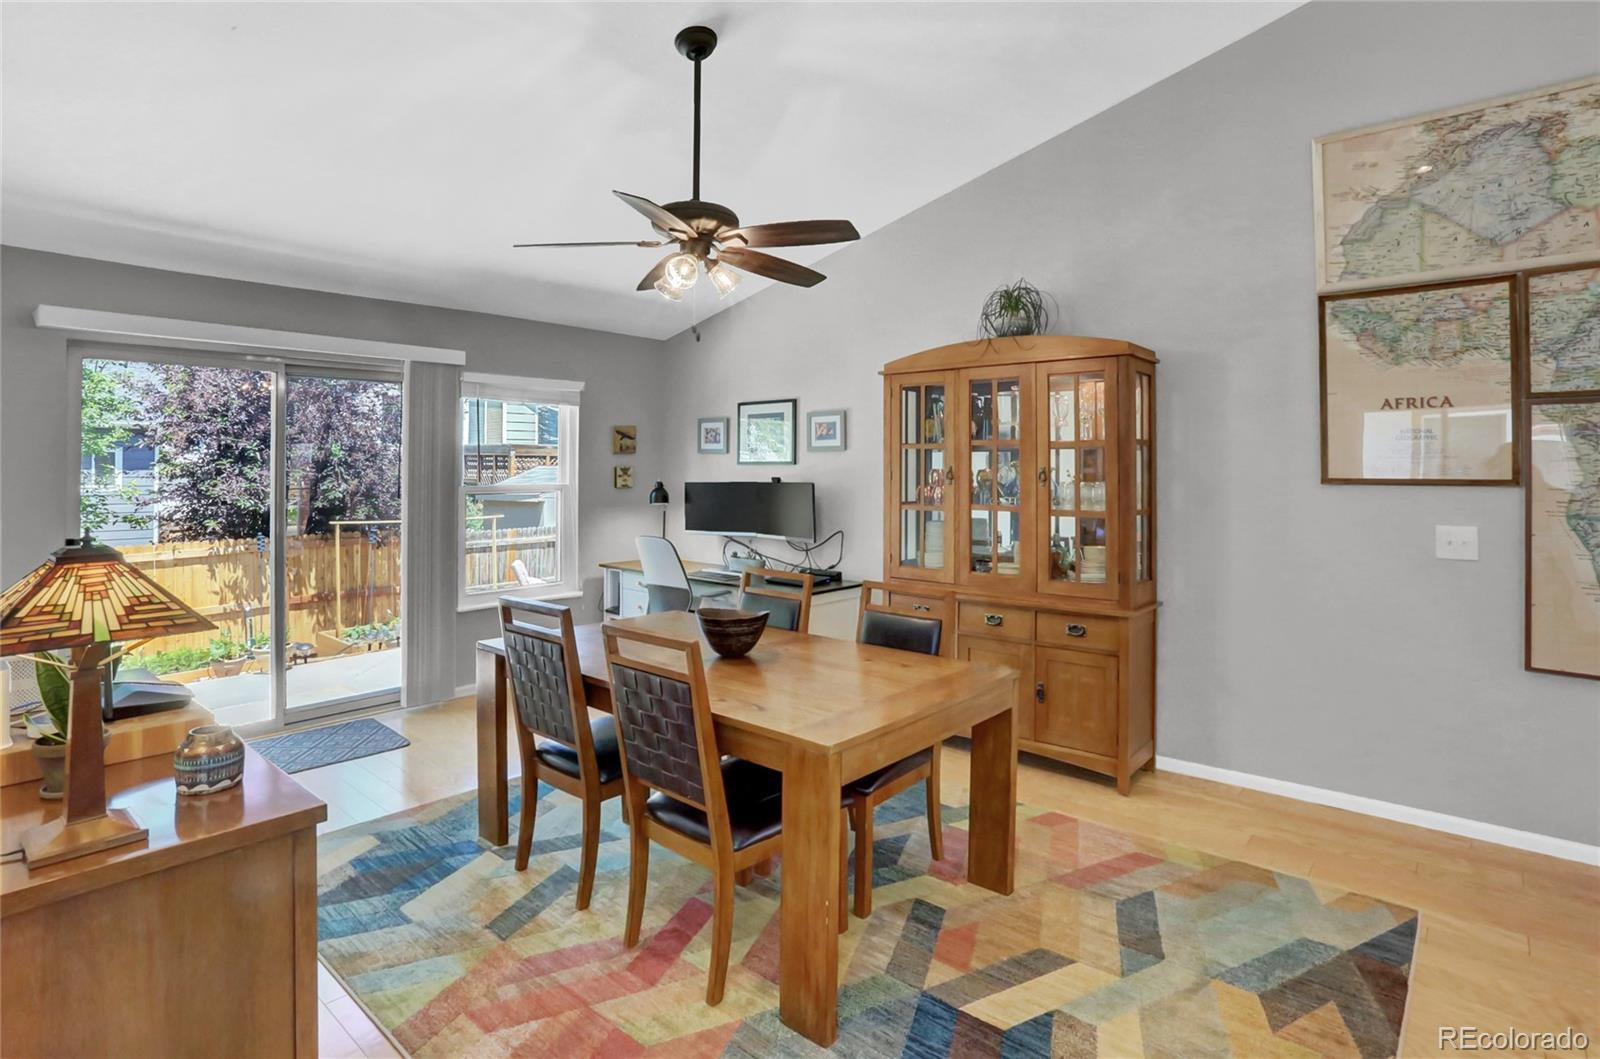 MLS# 7737811 - 8 - 1335 W 133rd Way, Westminster, CO 80234